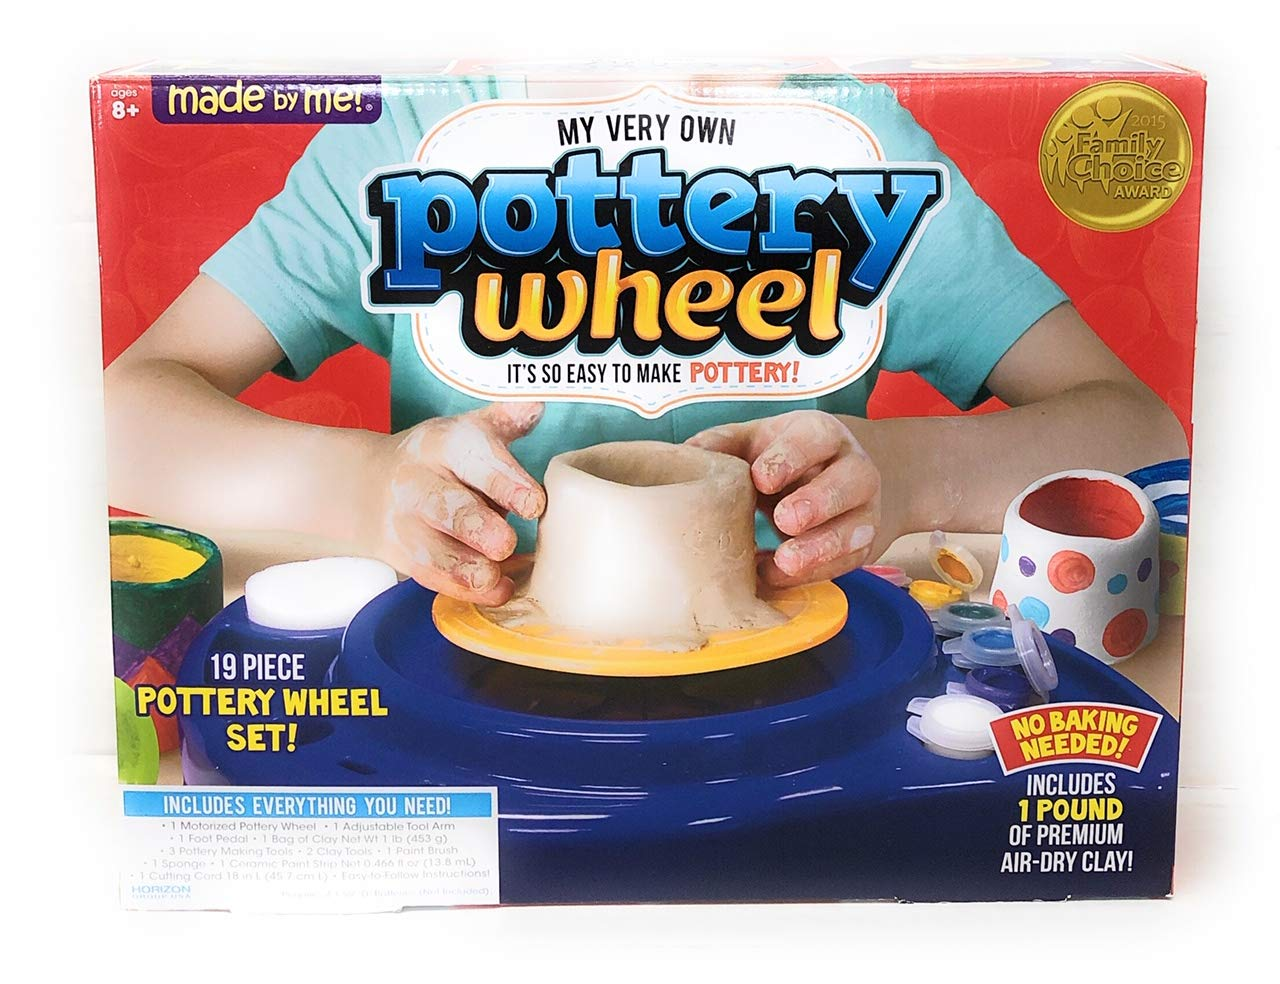 Made By Me 19 Piece Pottery Wheel Set Includes 1 Pound of Premium Air Dry Clay.